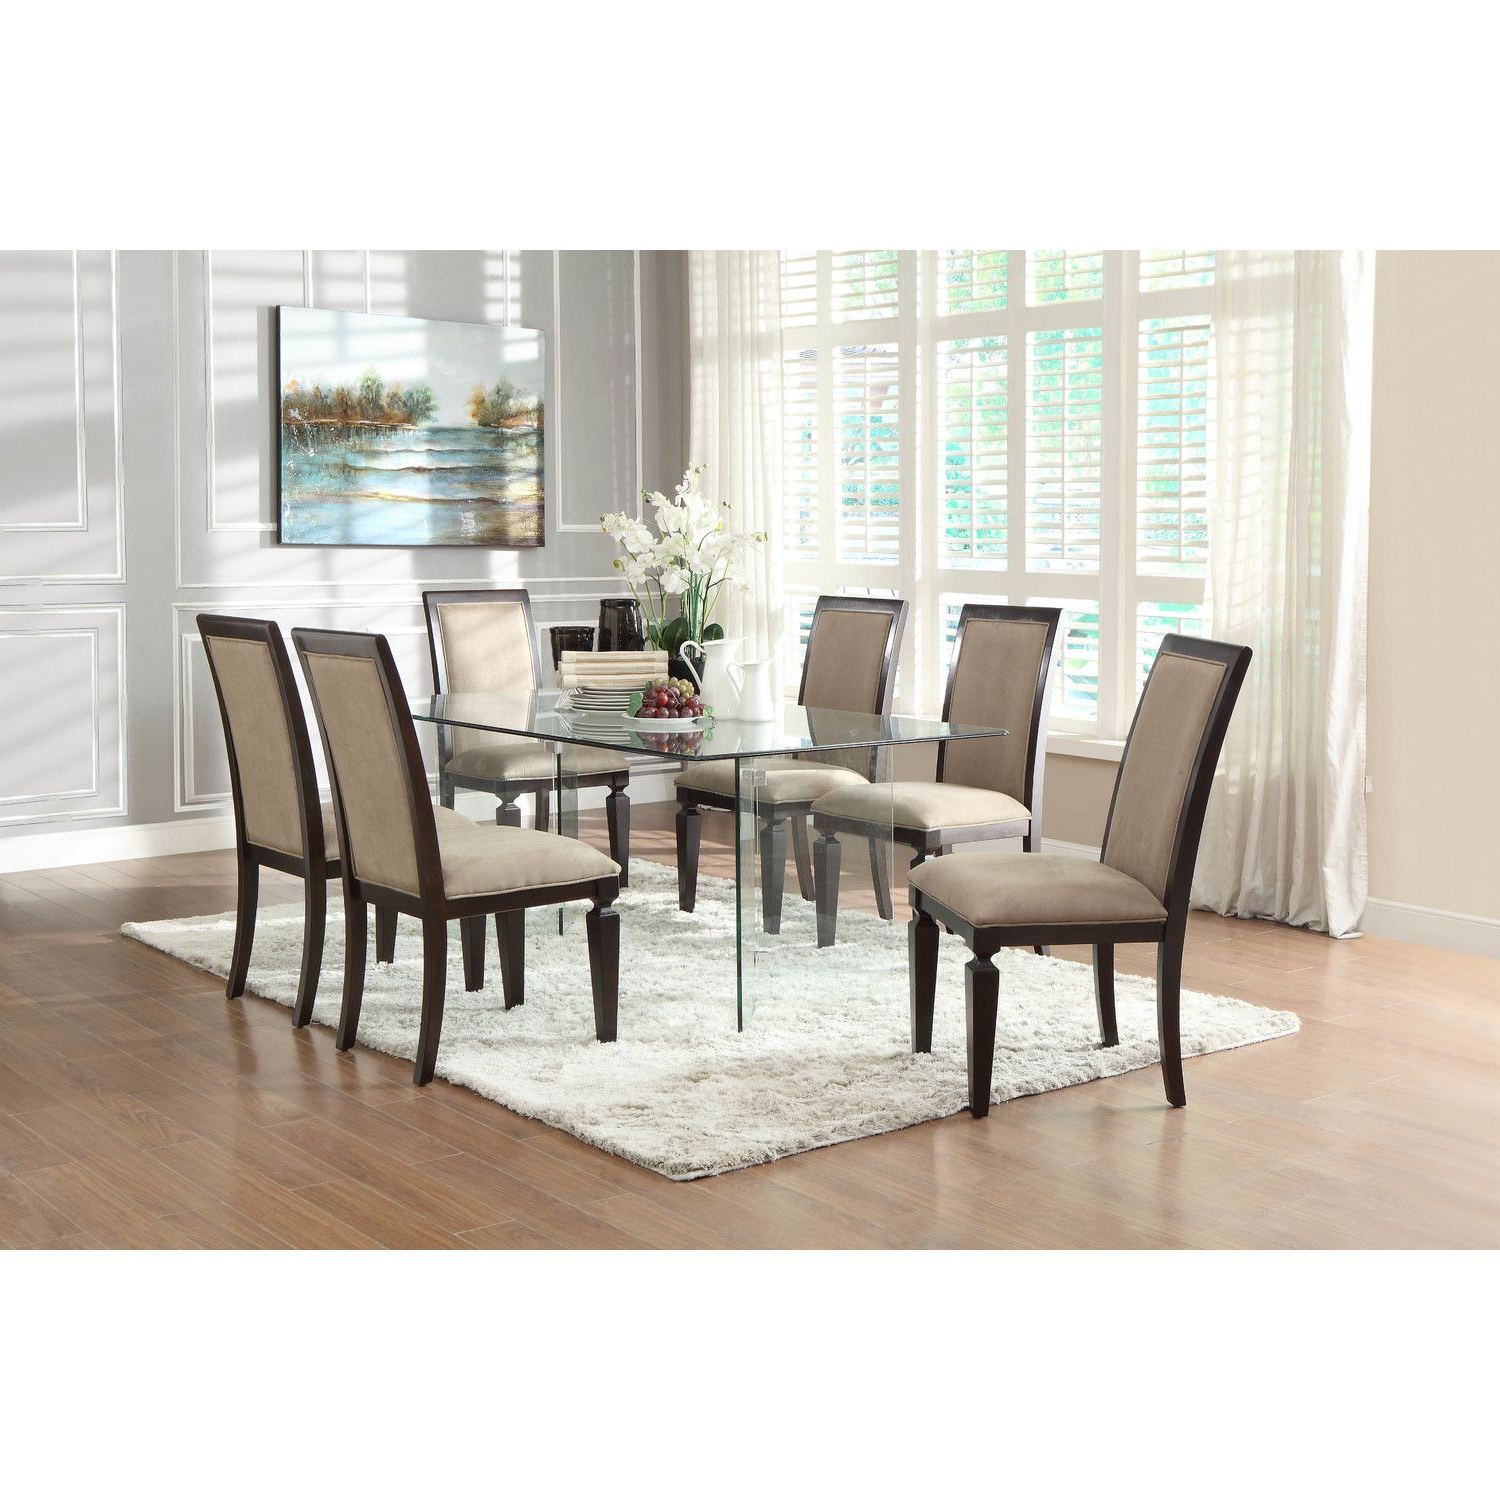 Dining With Latest Ephraim 5 Piece Dining Sets (View 3 of 25)